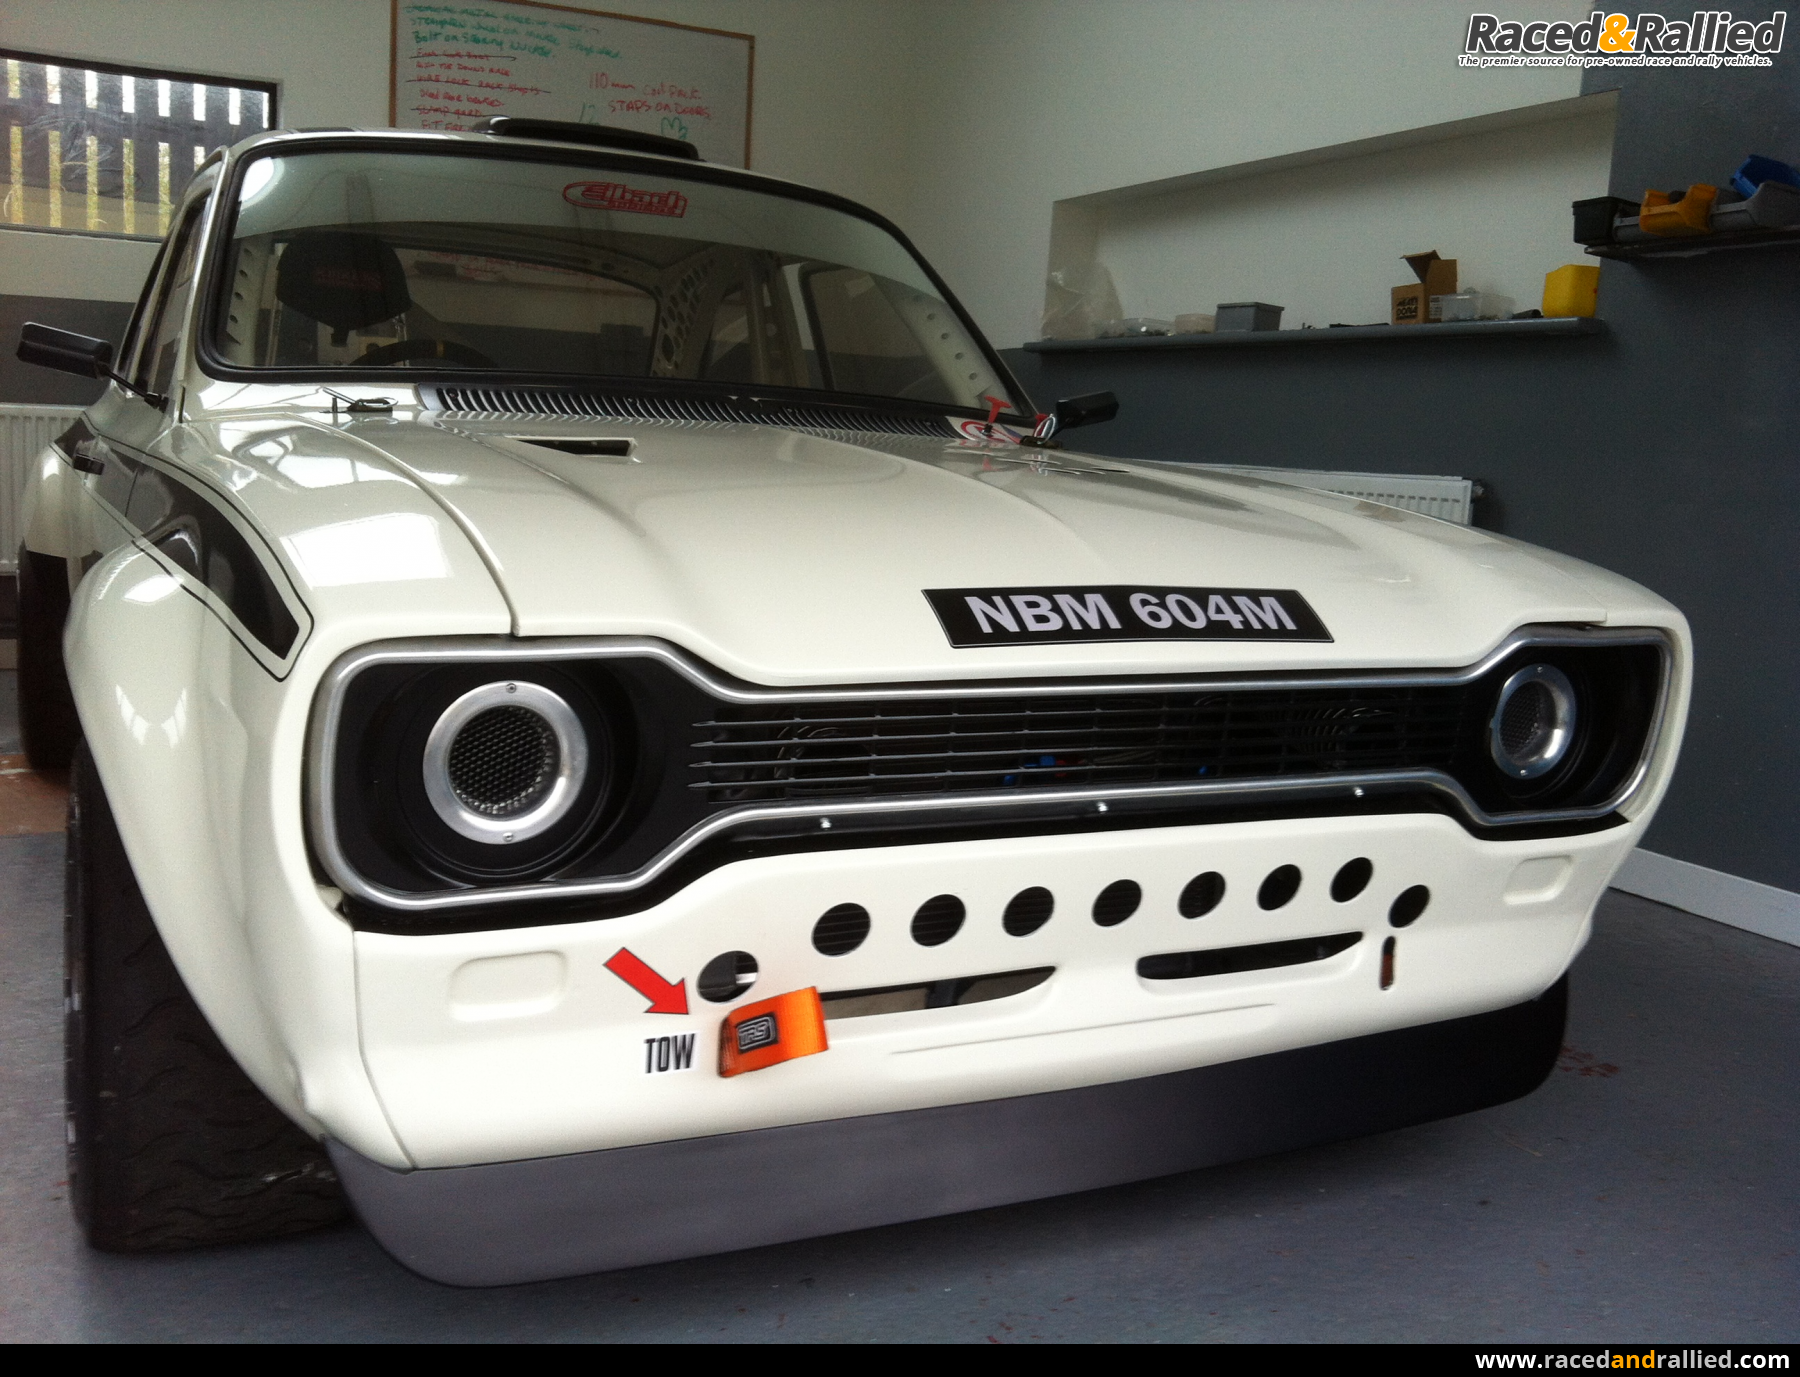 NEW BUILD ford mk1 escort | Race Cars for sale at Raced & Rallied ...